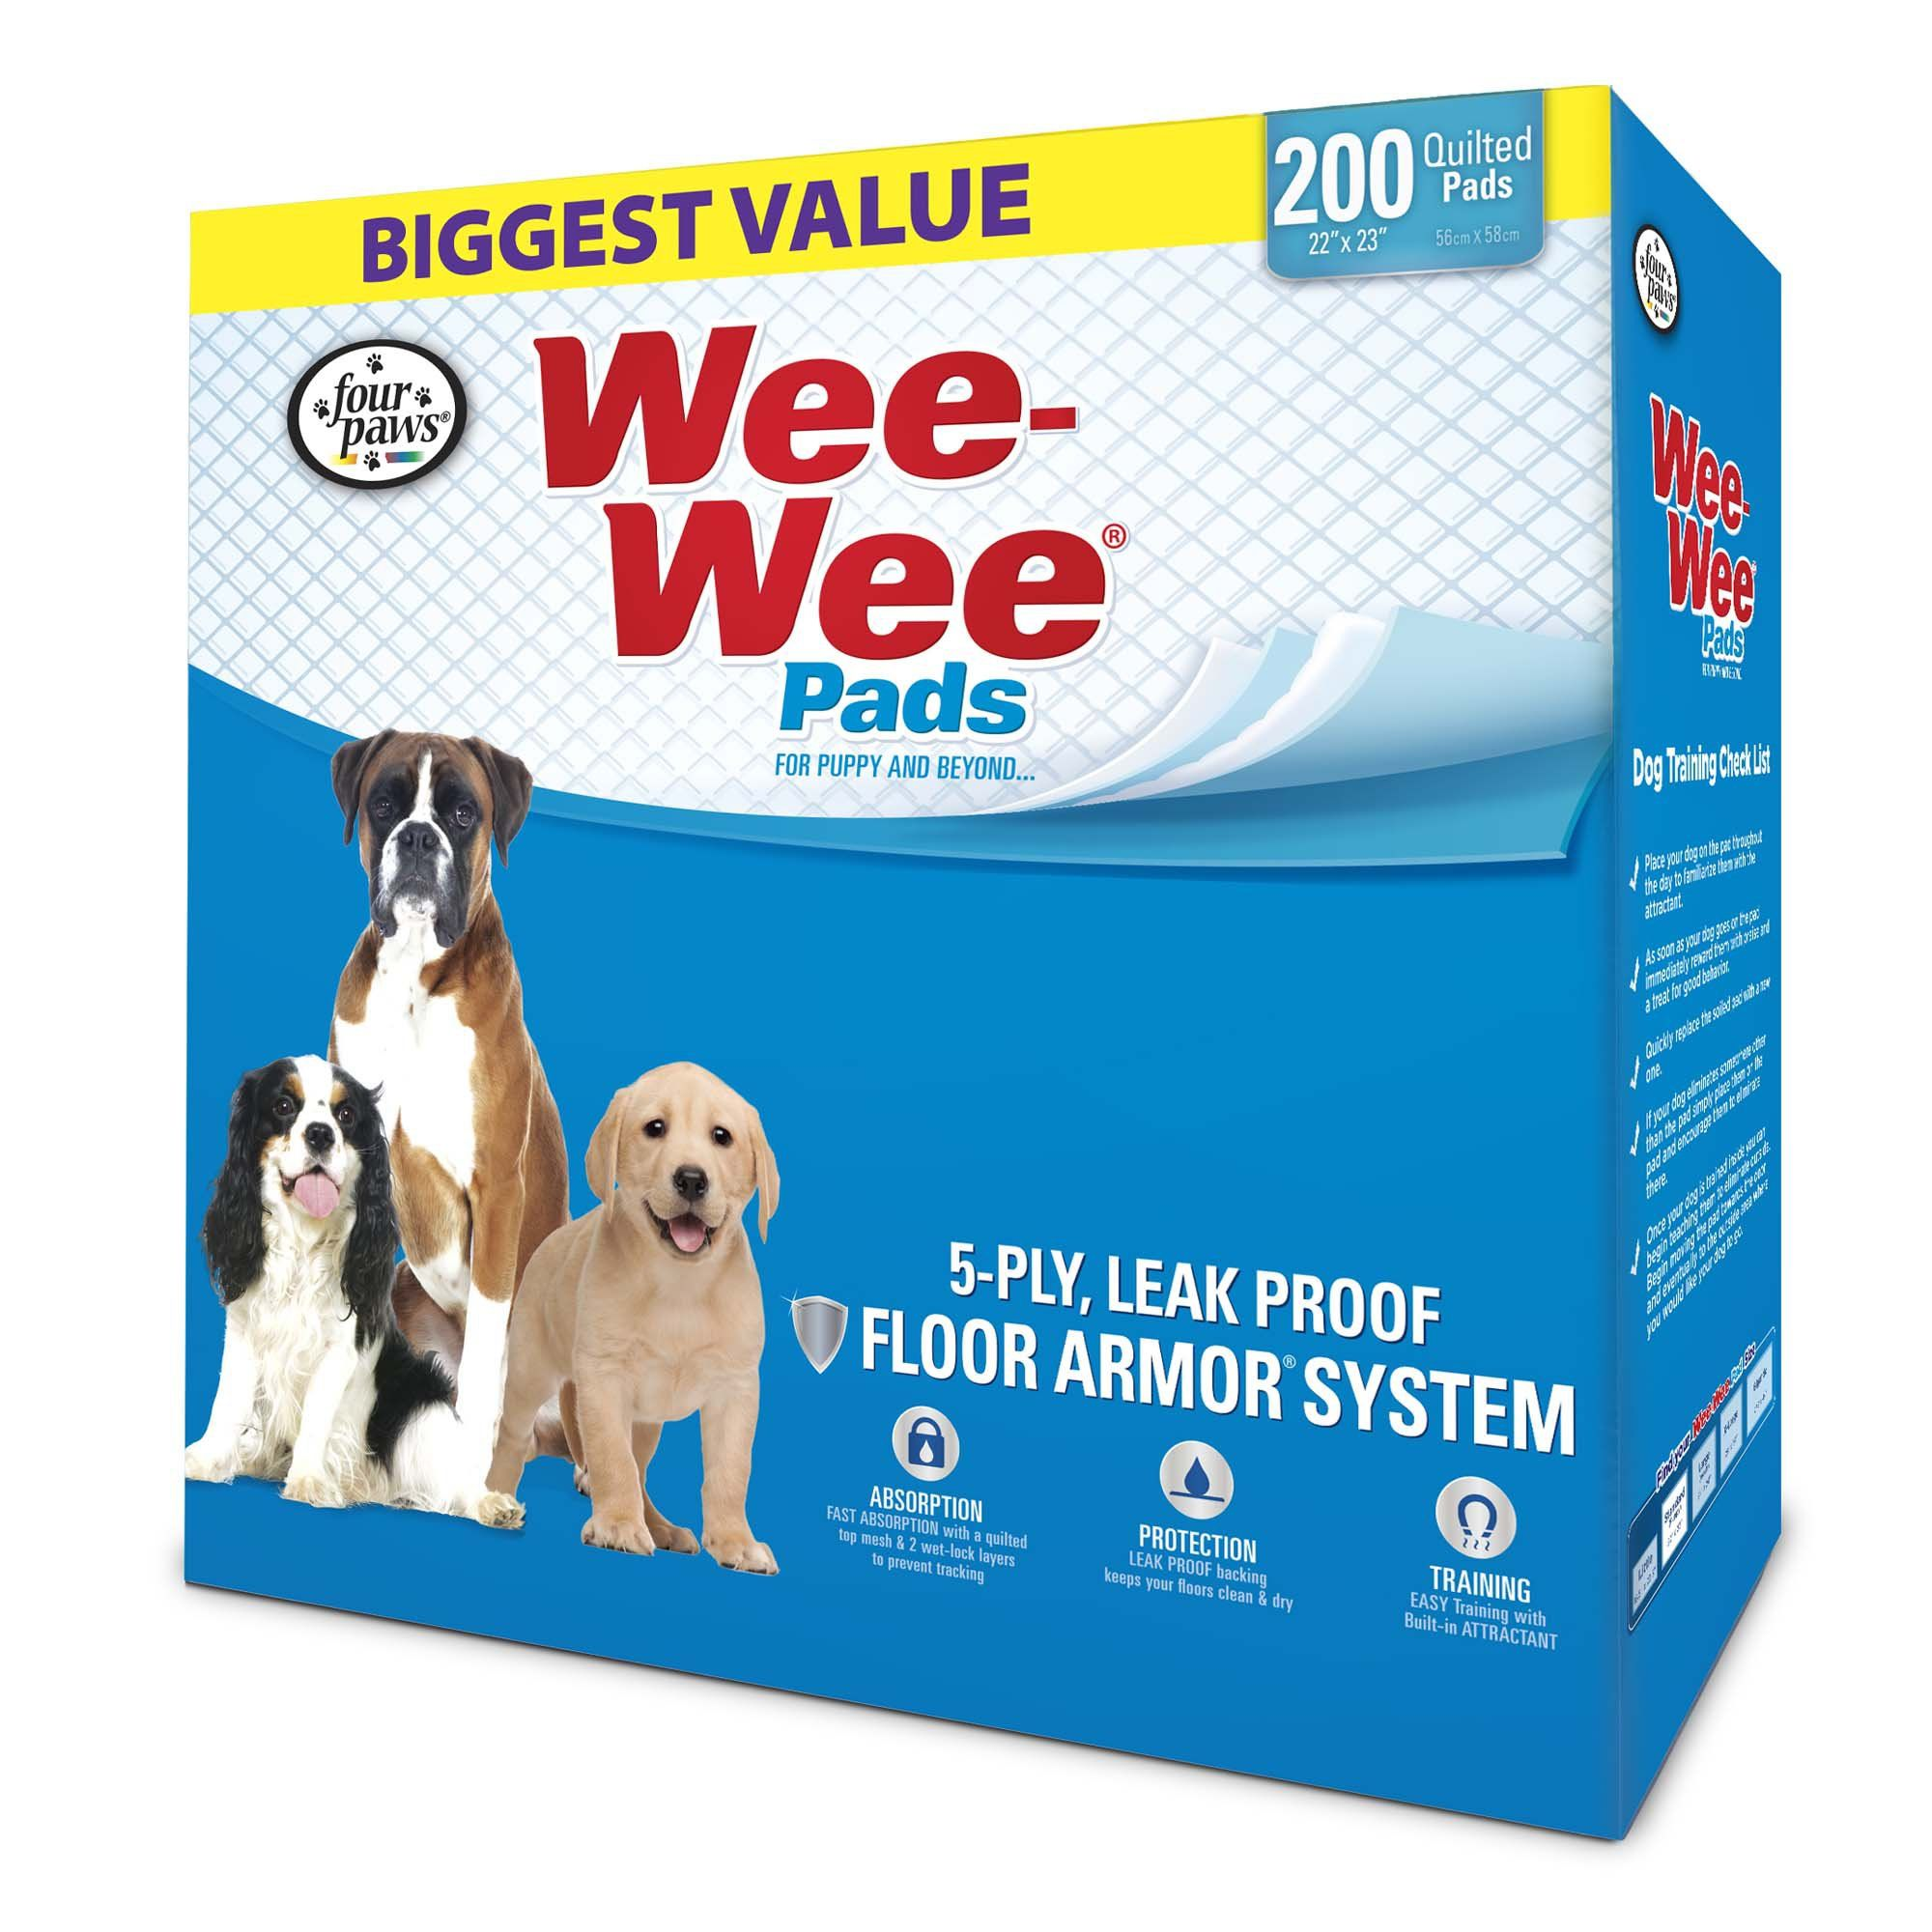 Wee Wee Pads 200 Count Puppy Pads Dog Training Pads Training Pads